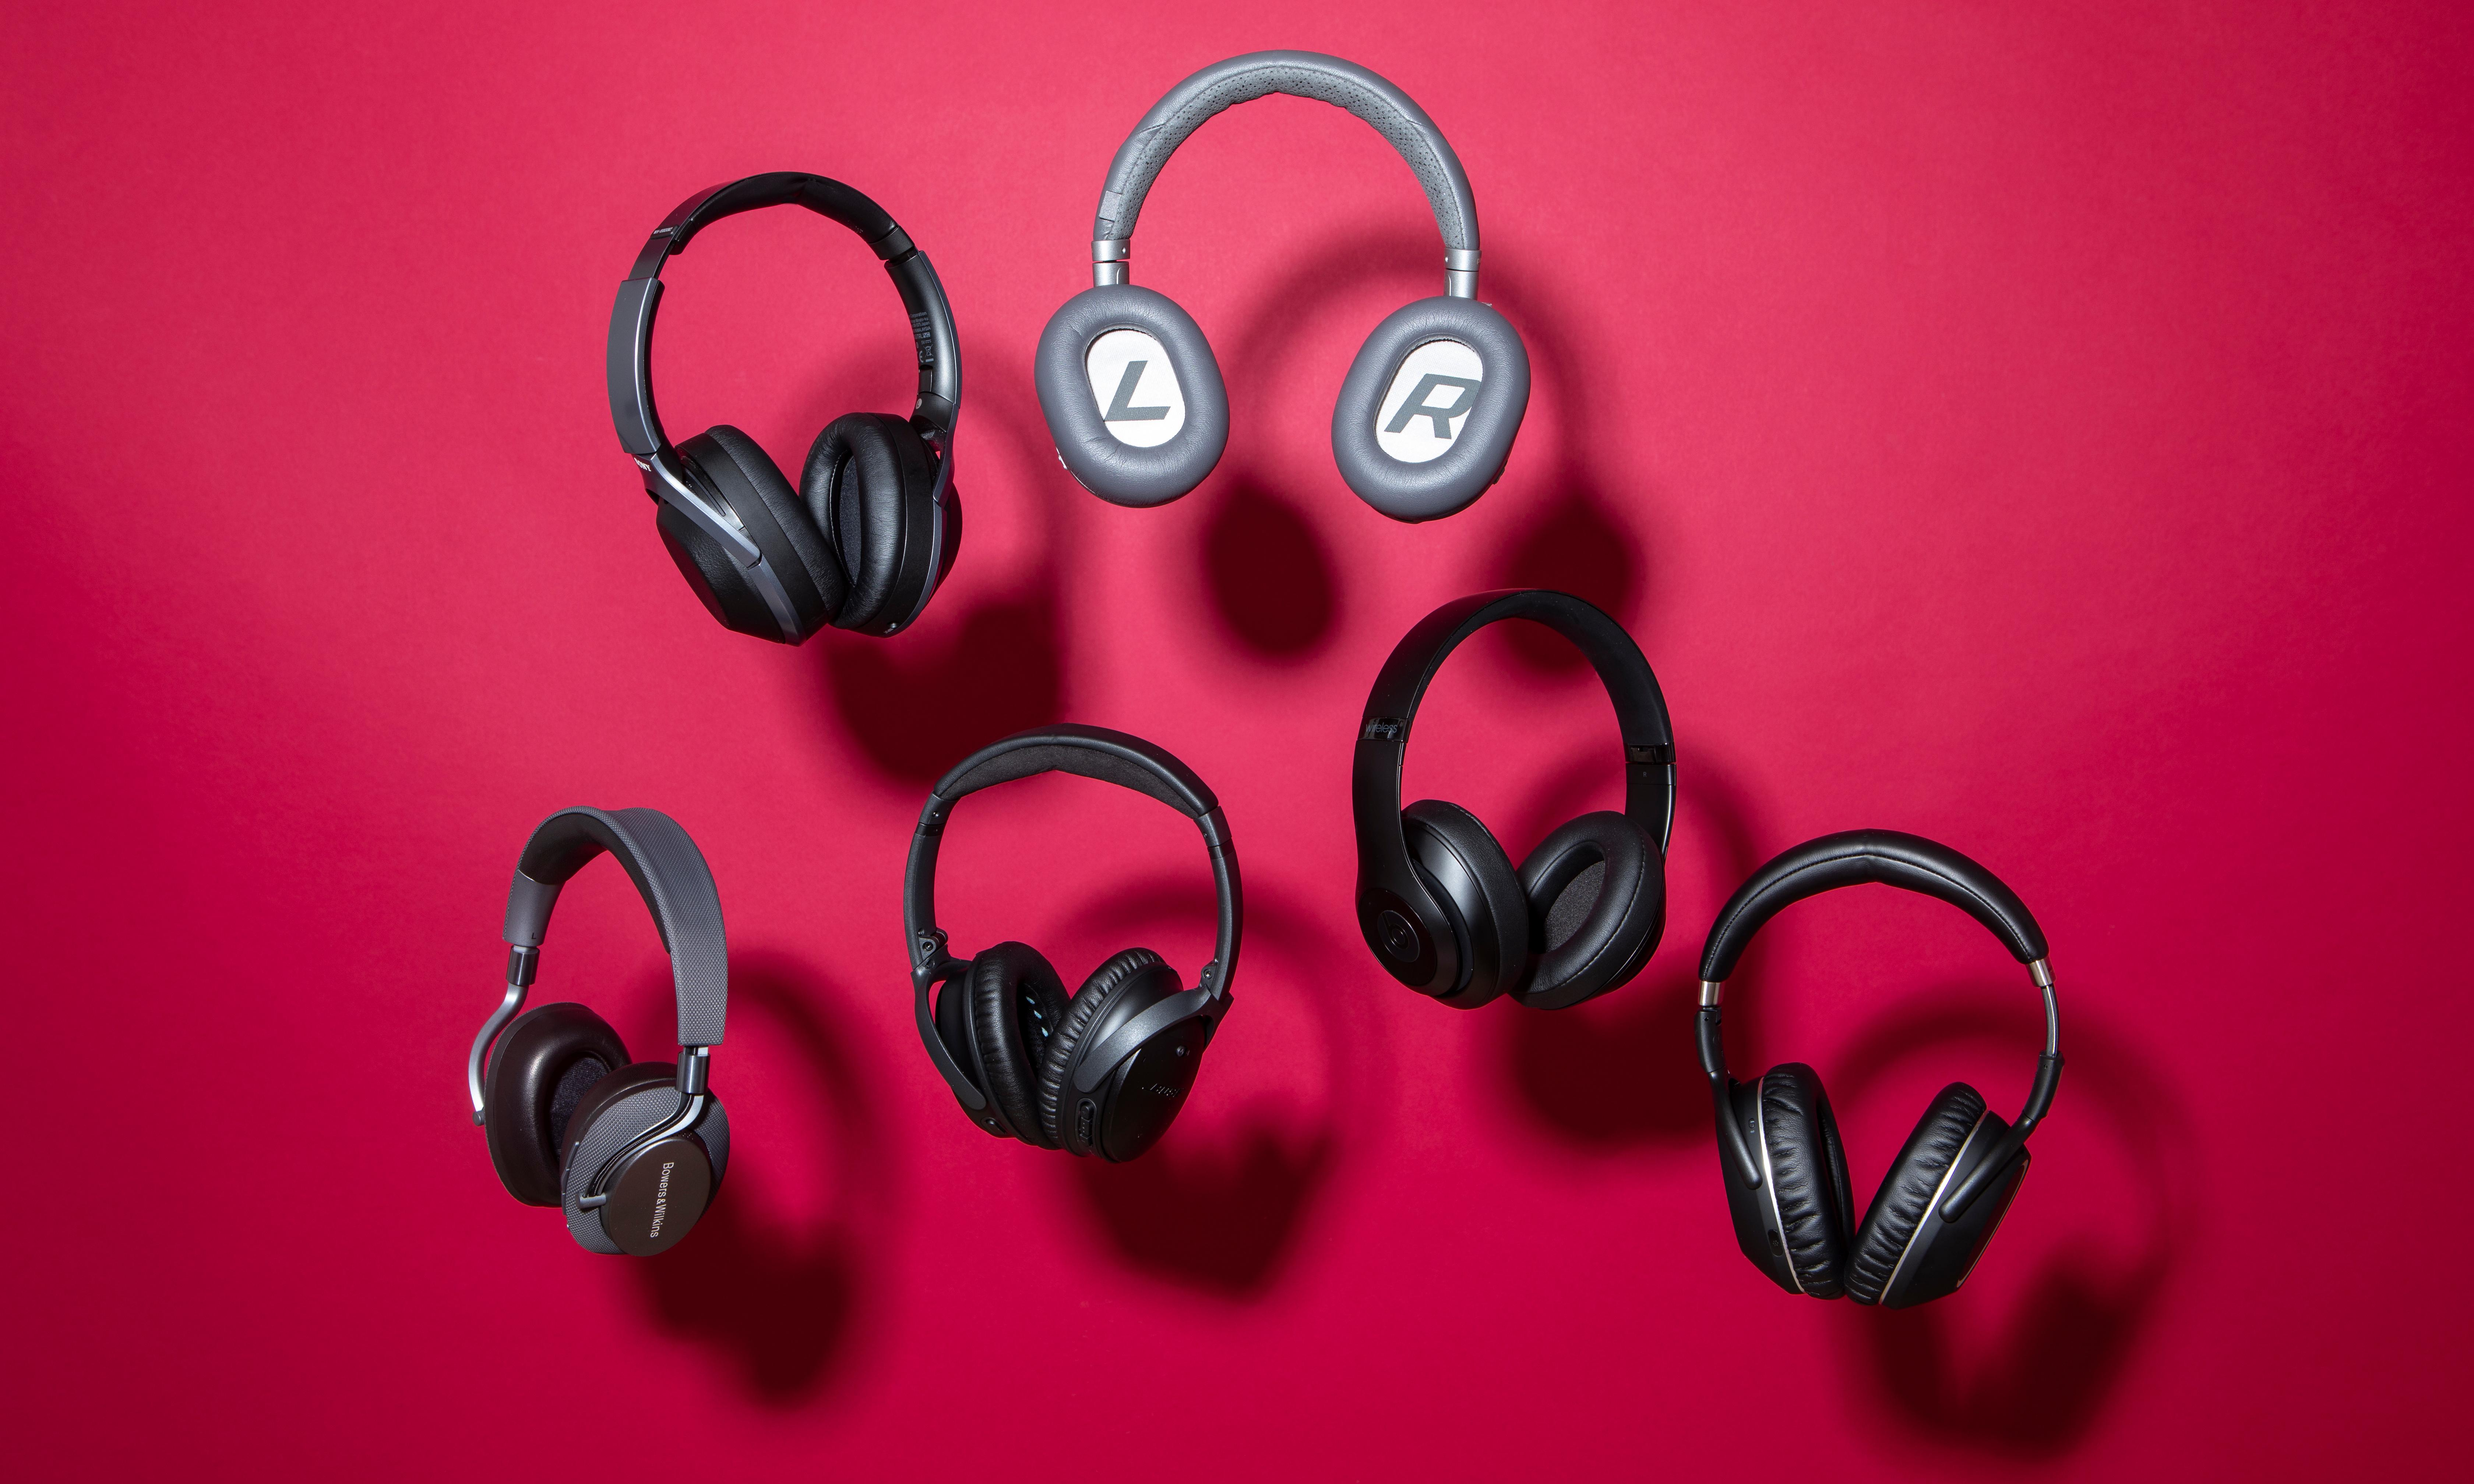 Hushed tones: six of the best noise-cancelling headphones